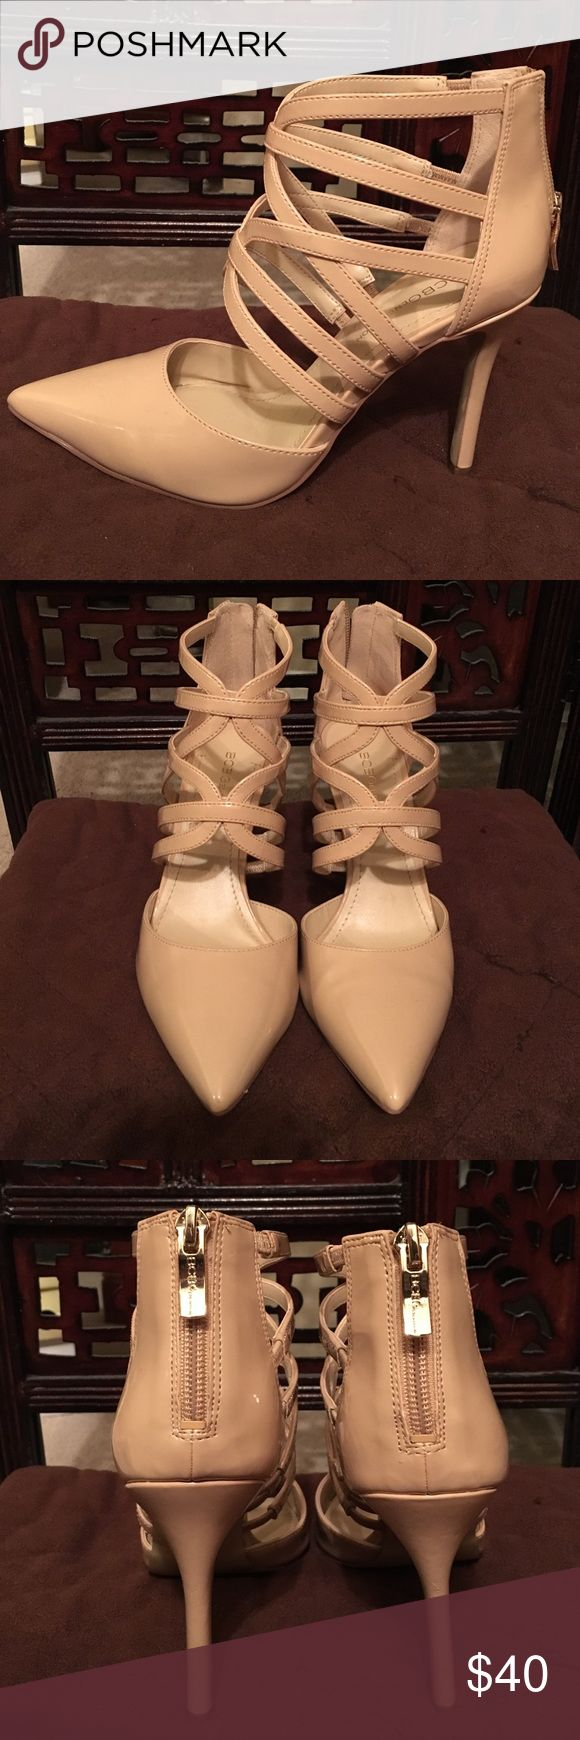 """BCBGeneration strappy neutral pumps Size 6    Neutral patent 4"""" heel with zip up back by BCBGeneration.  Worn once/excellent condition.  ❌sorry no trades BCBGeneration Shoes Heels"""